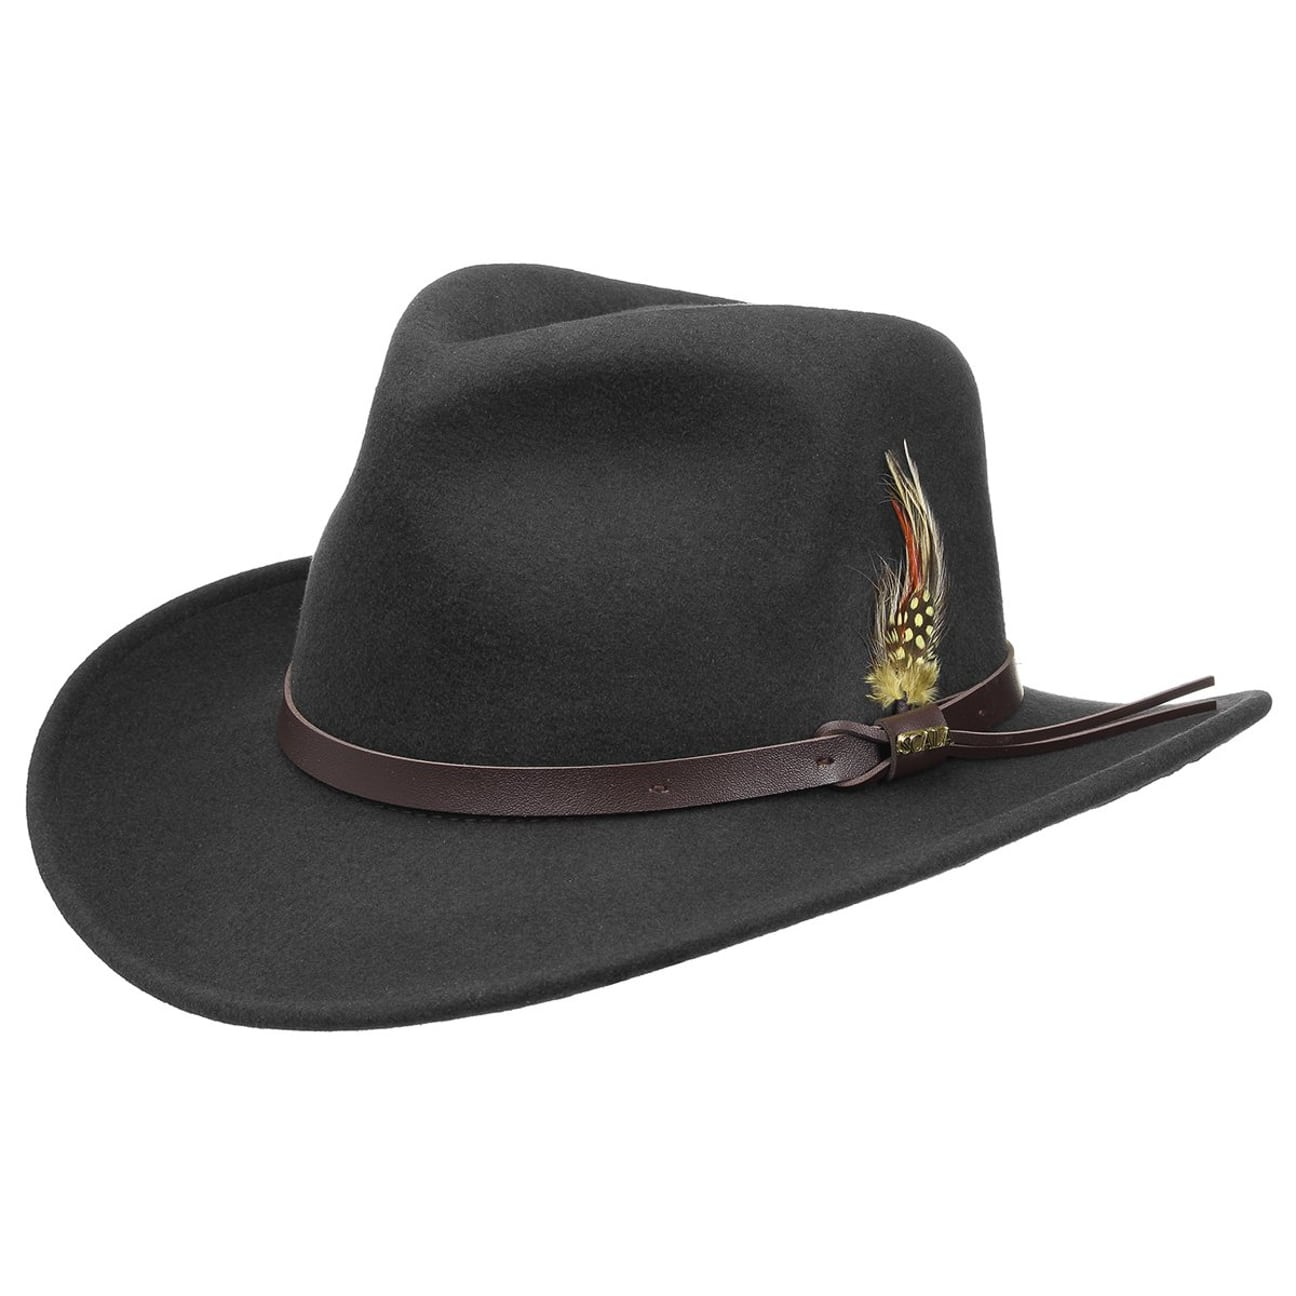 ... Outback Cappello Western - cammello 6 77ee799b0bd5